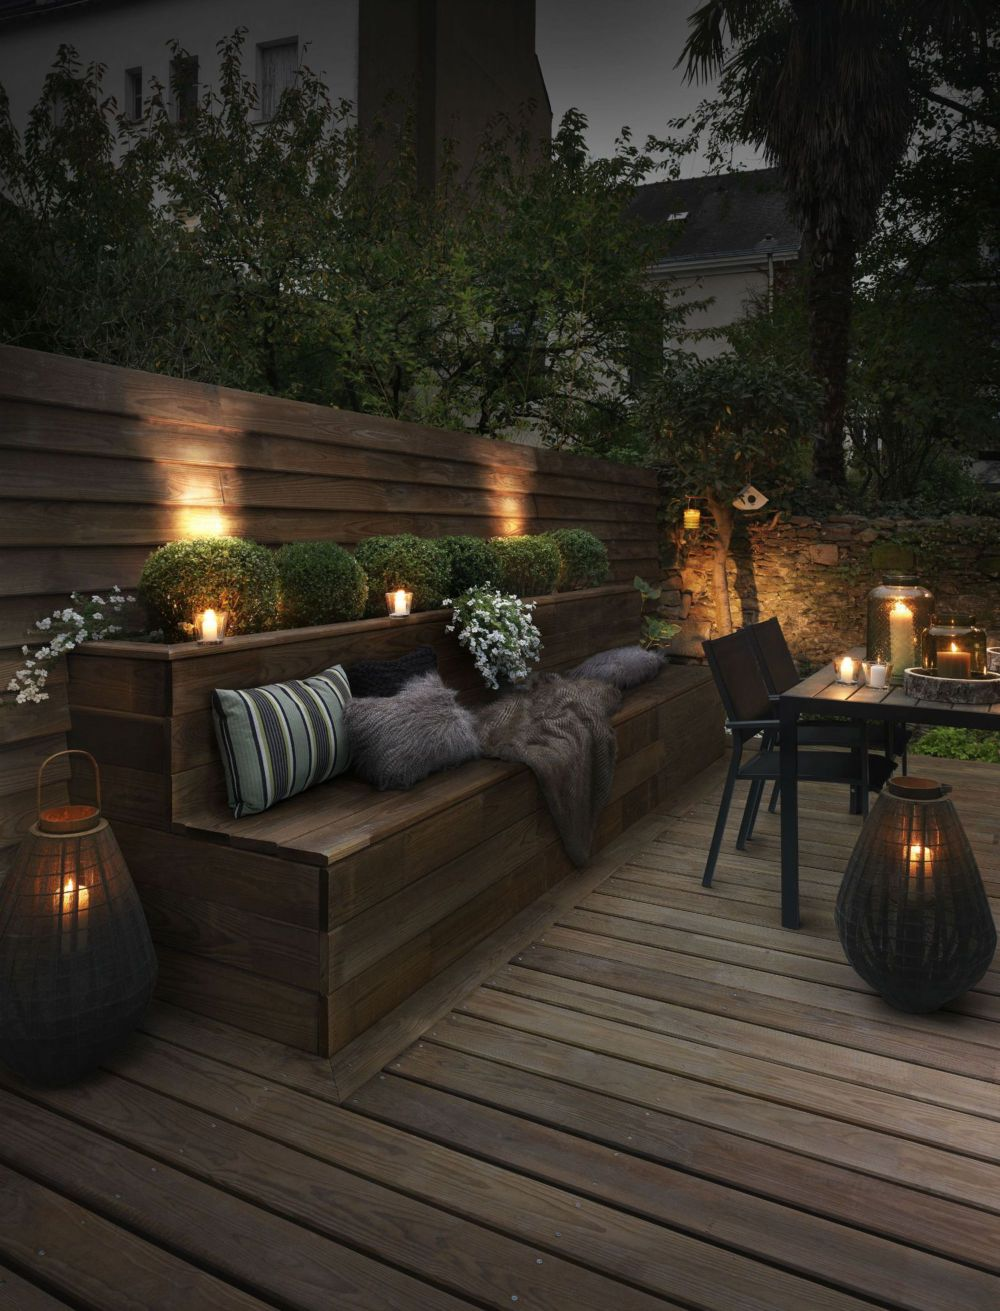 Amp up your backyard tempo with these lighting ideas